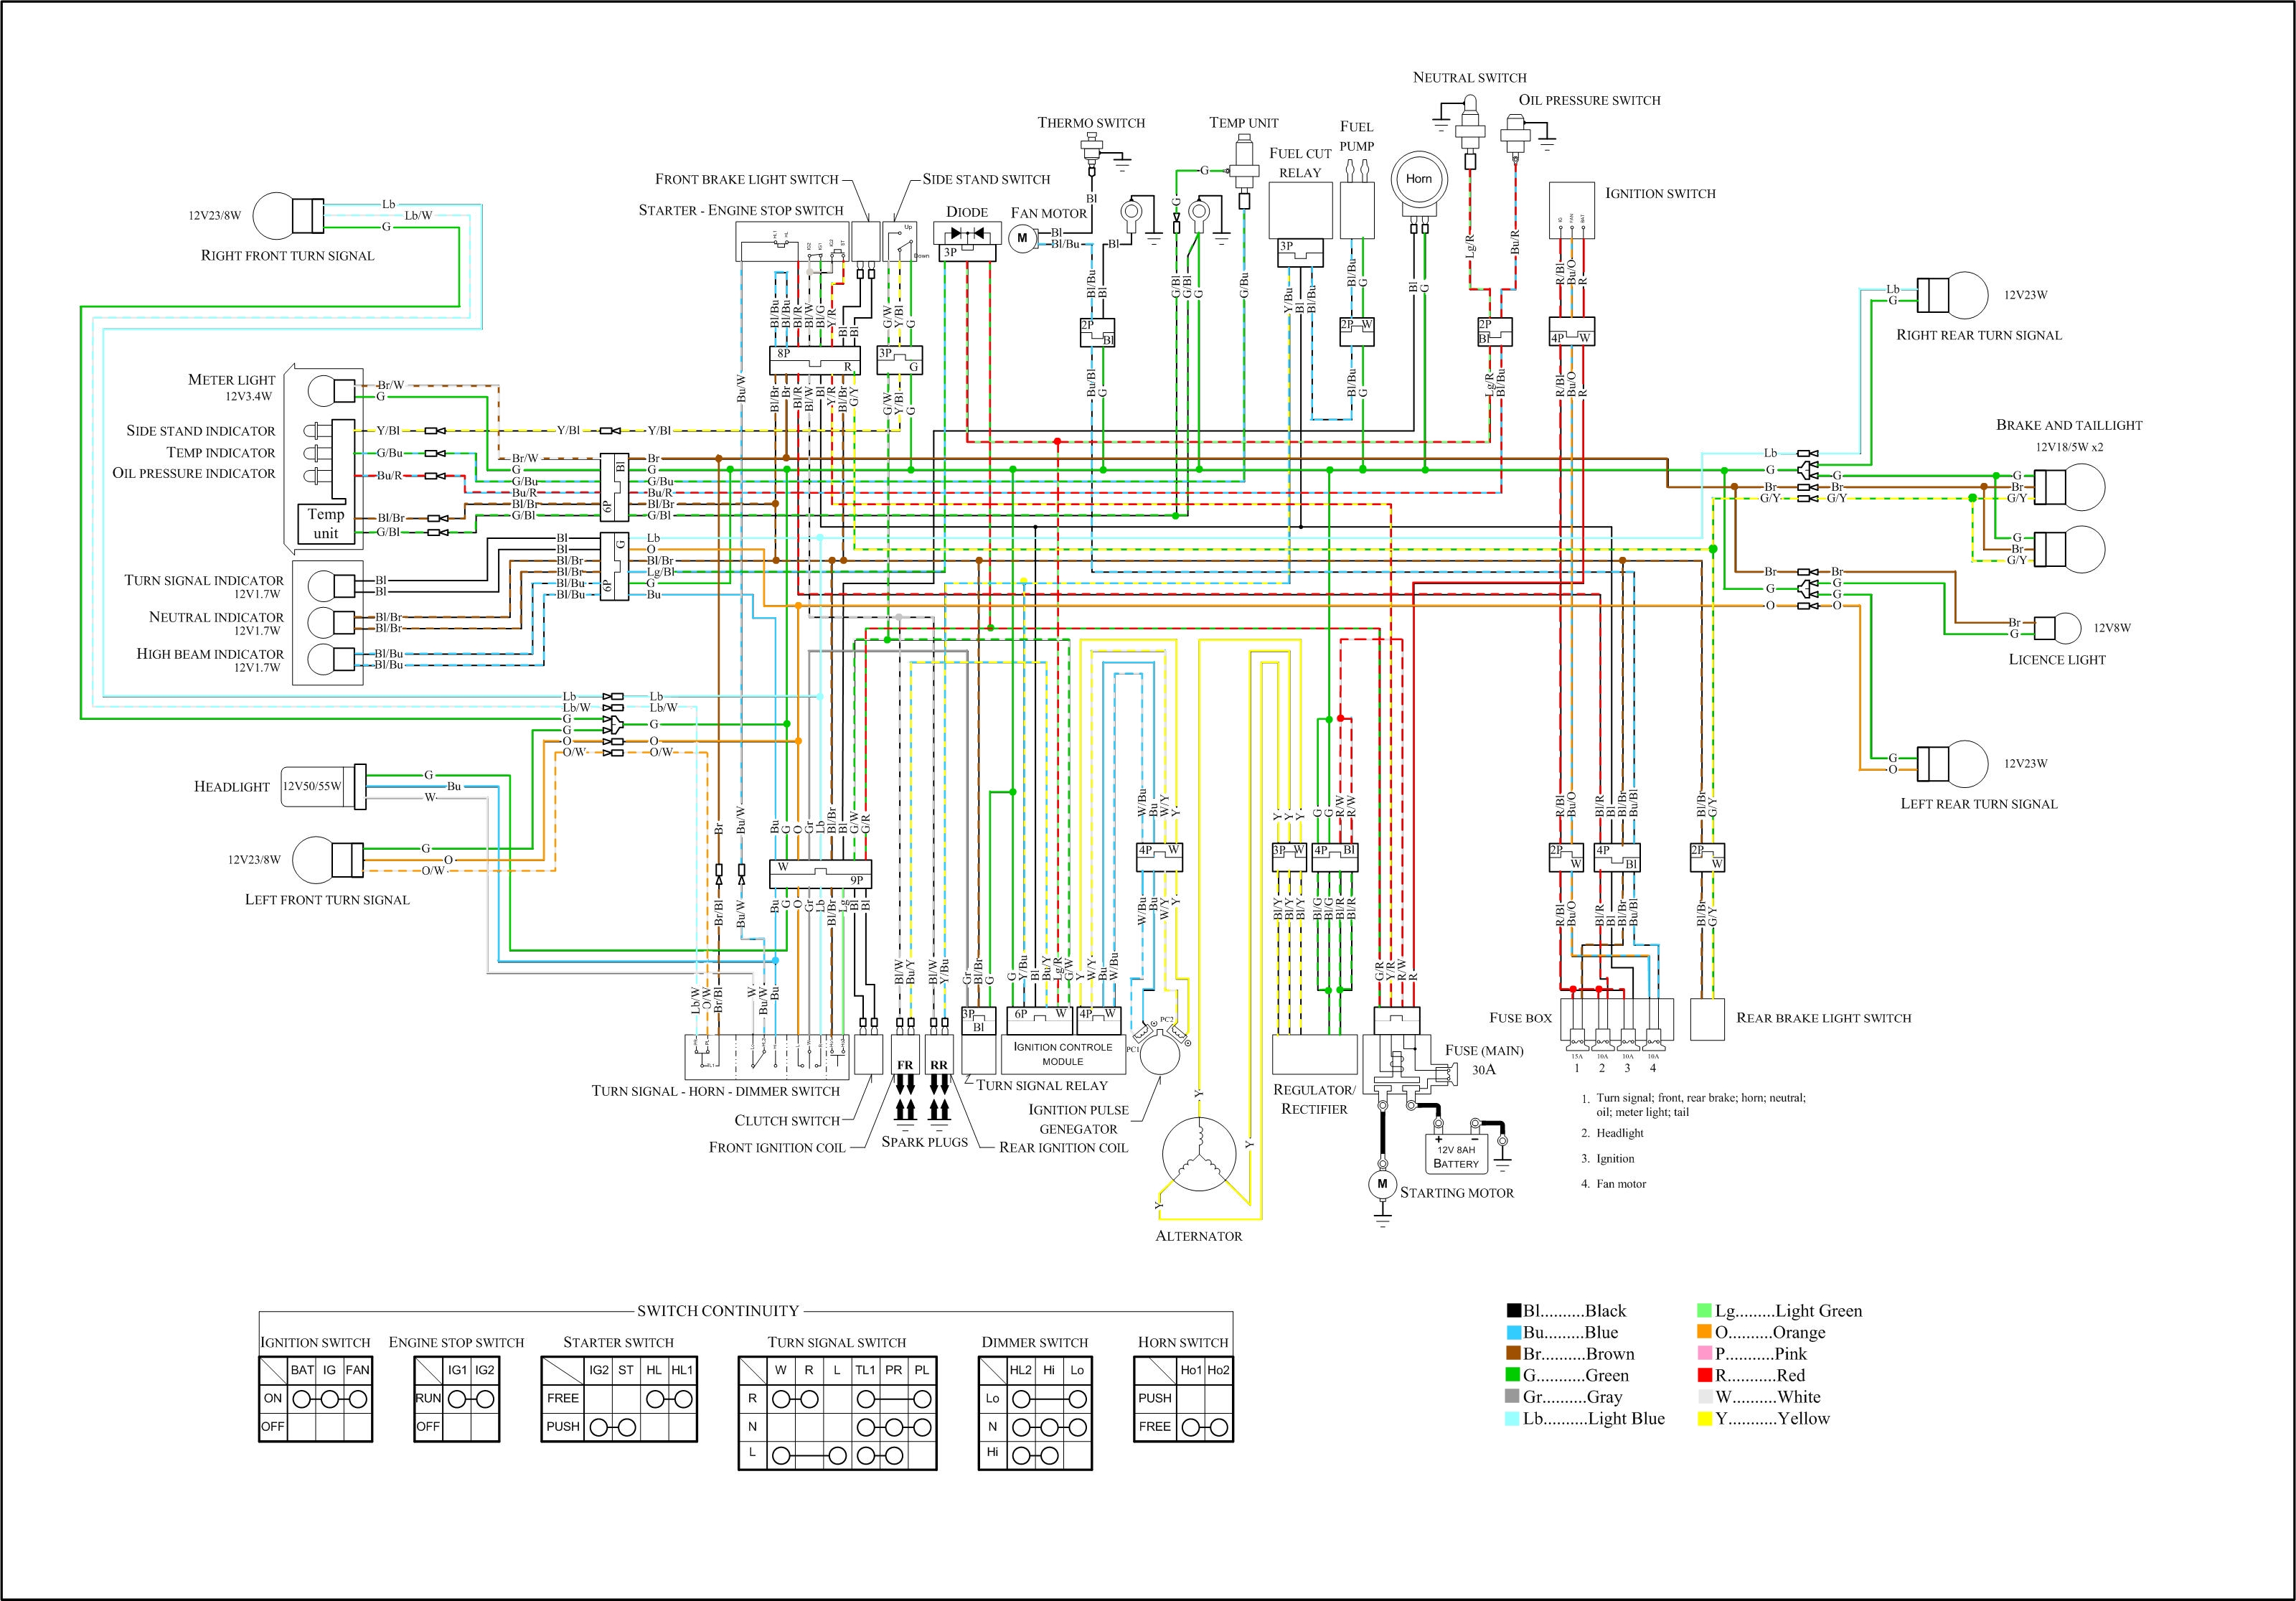 VT600wiring motorcycle wiring diagrams motorcycle wiring diagram at gsmx.co